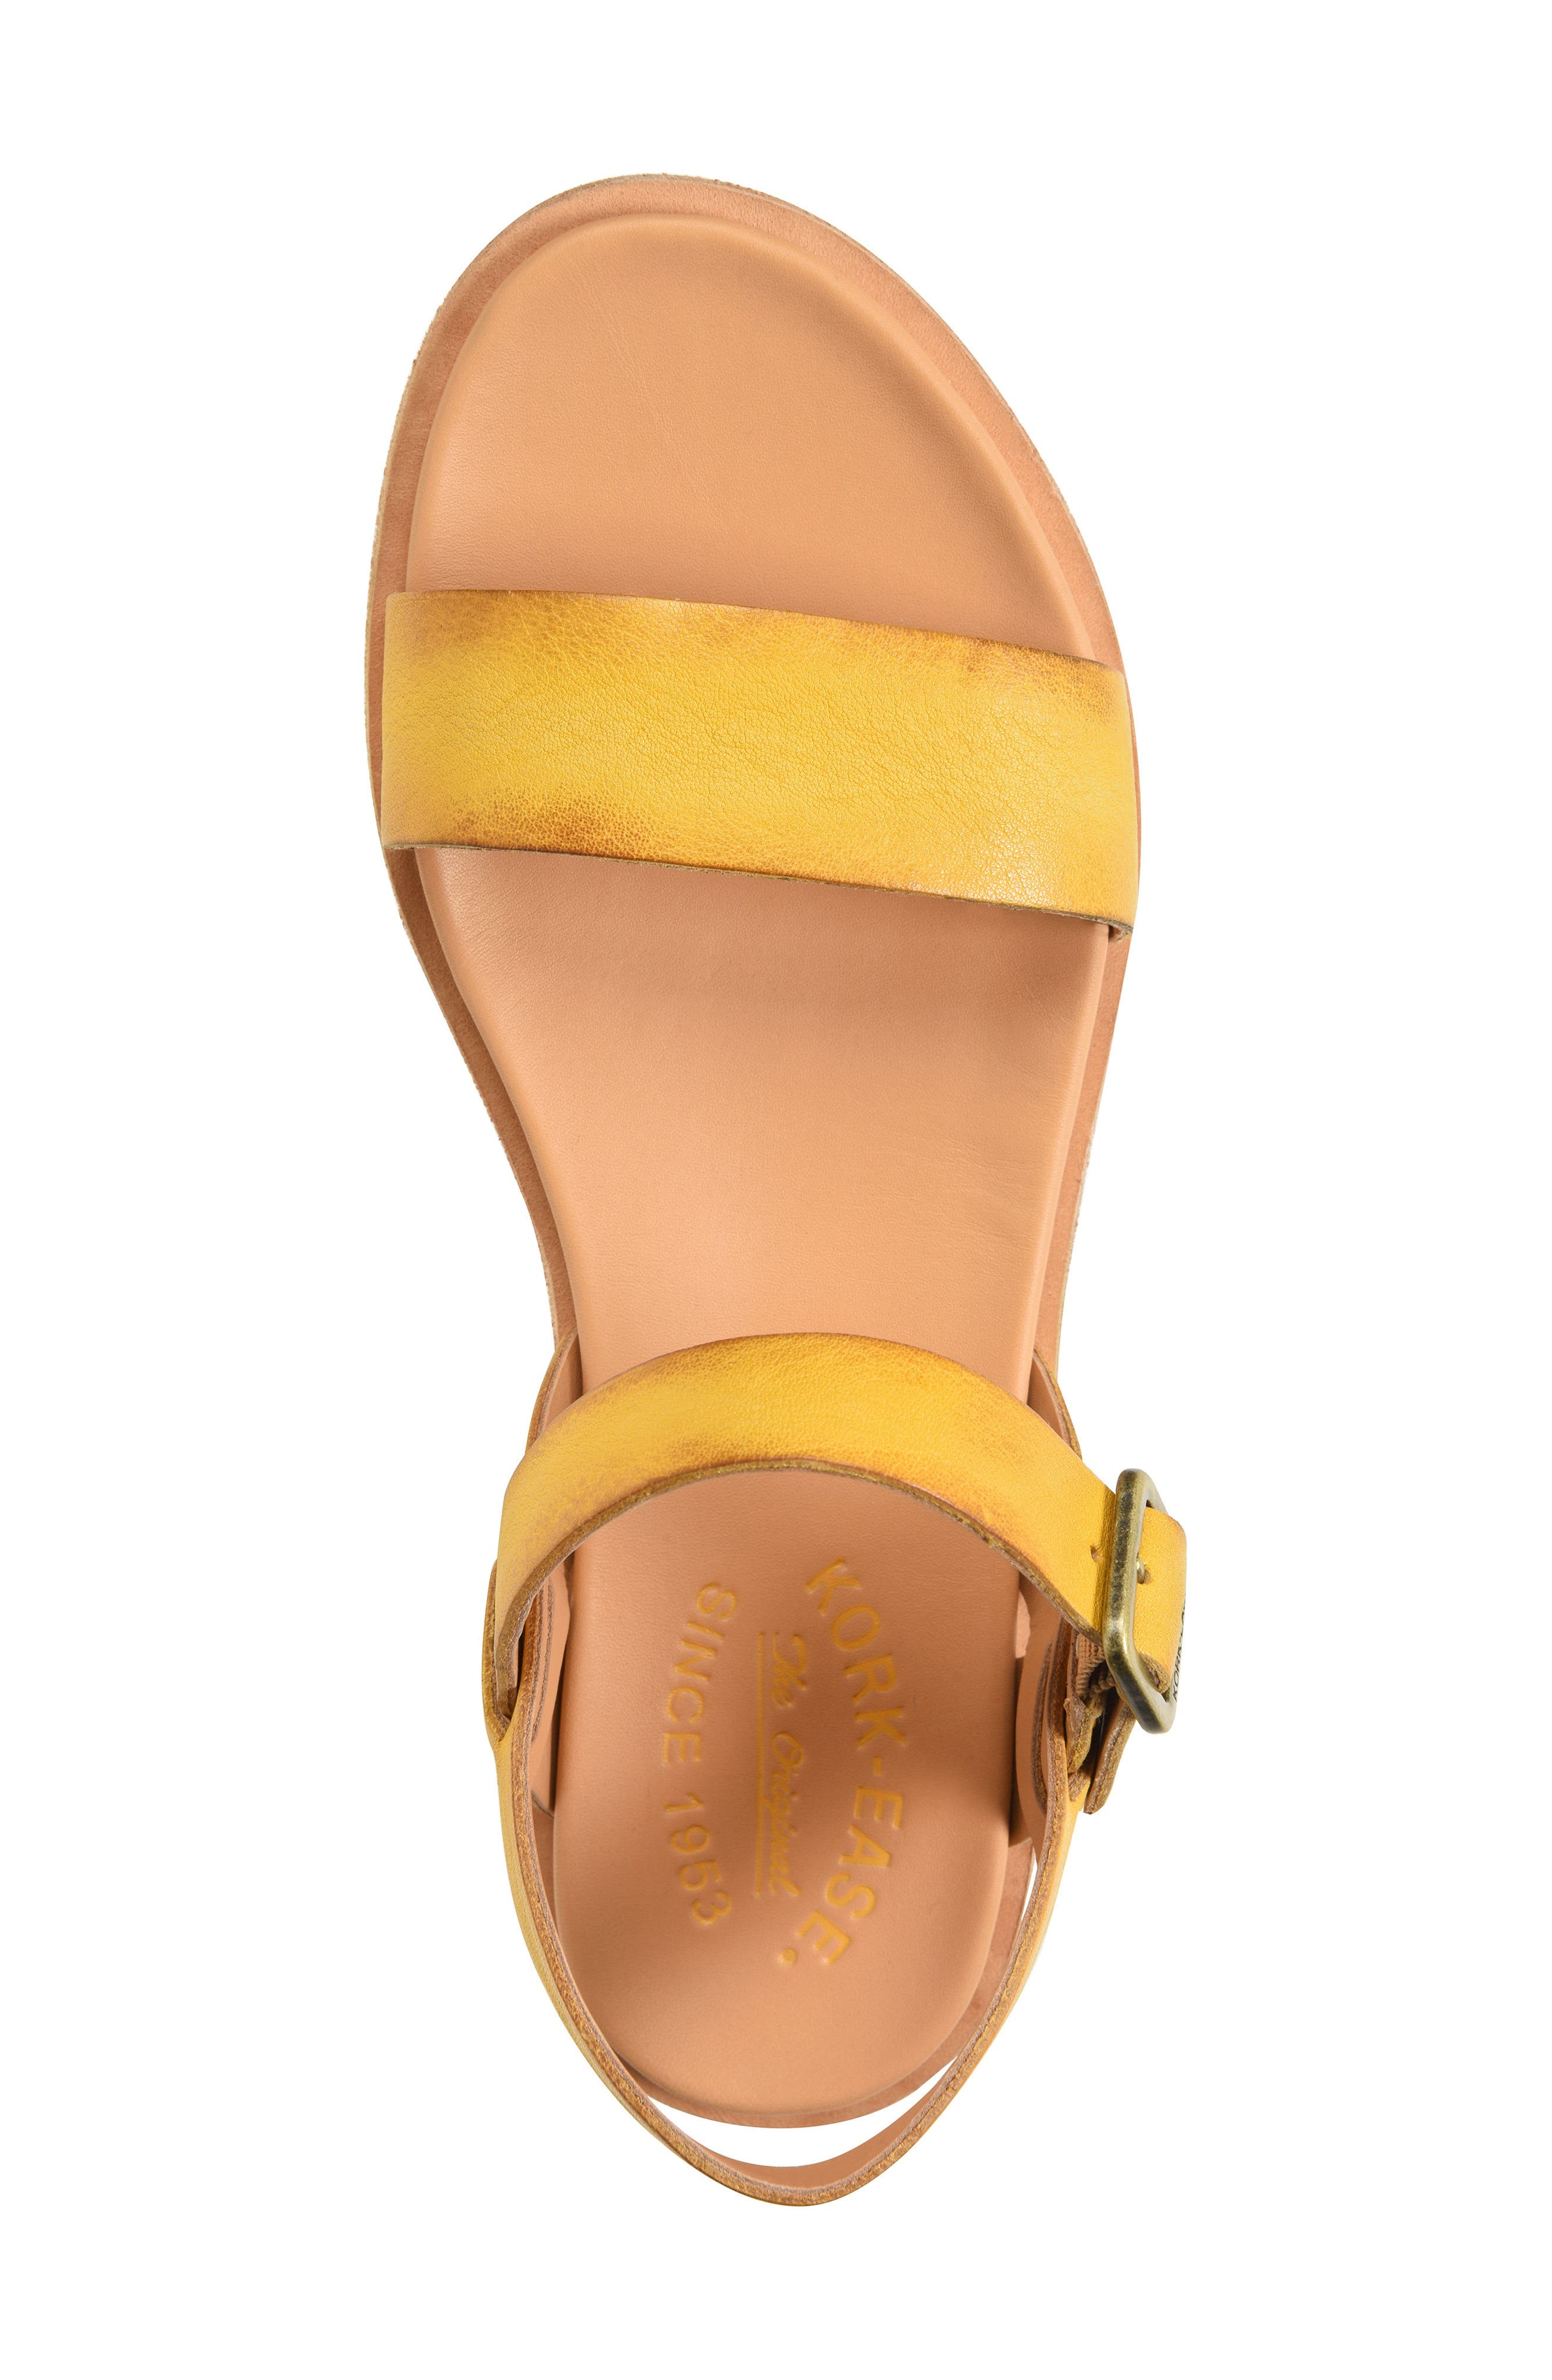 Yucca Sandal,                             Alternate thumbnail 4, color,                             Yellow Leather